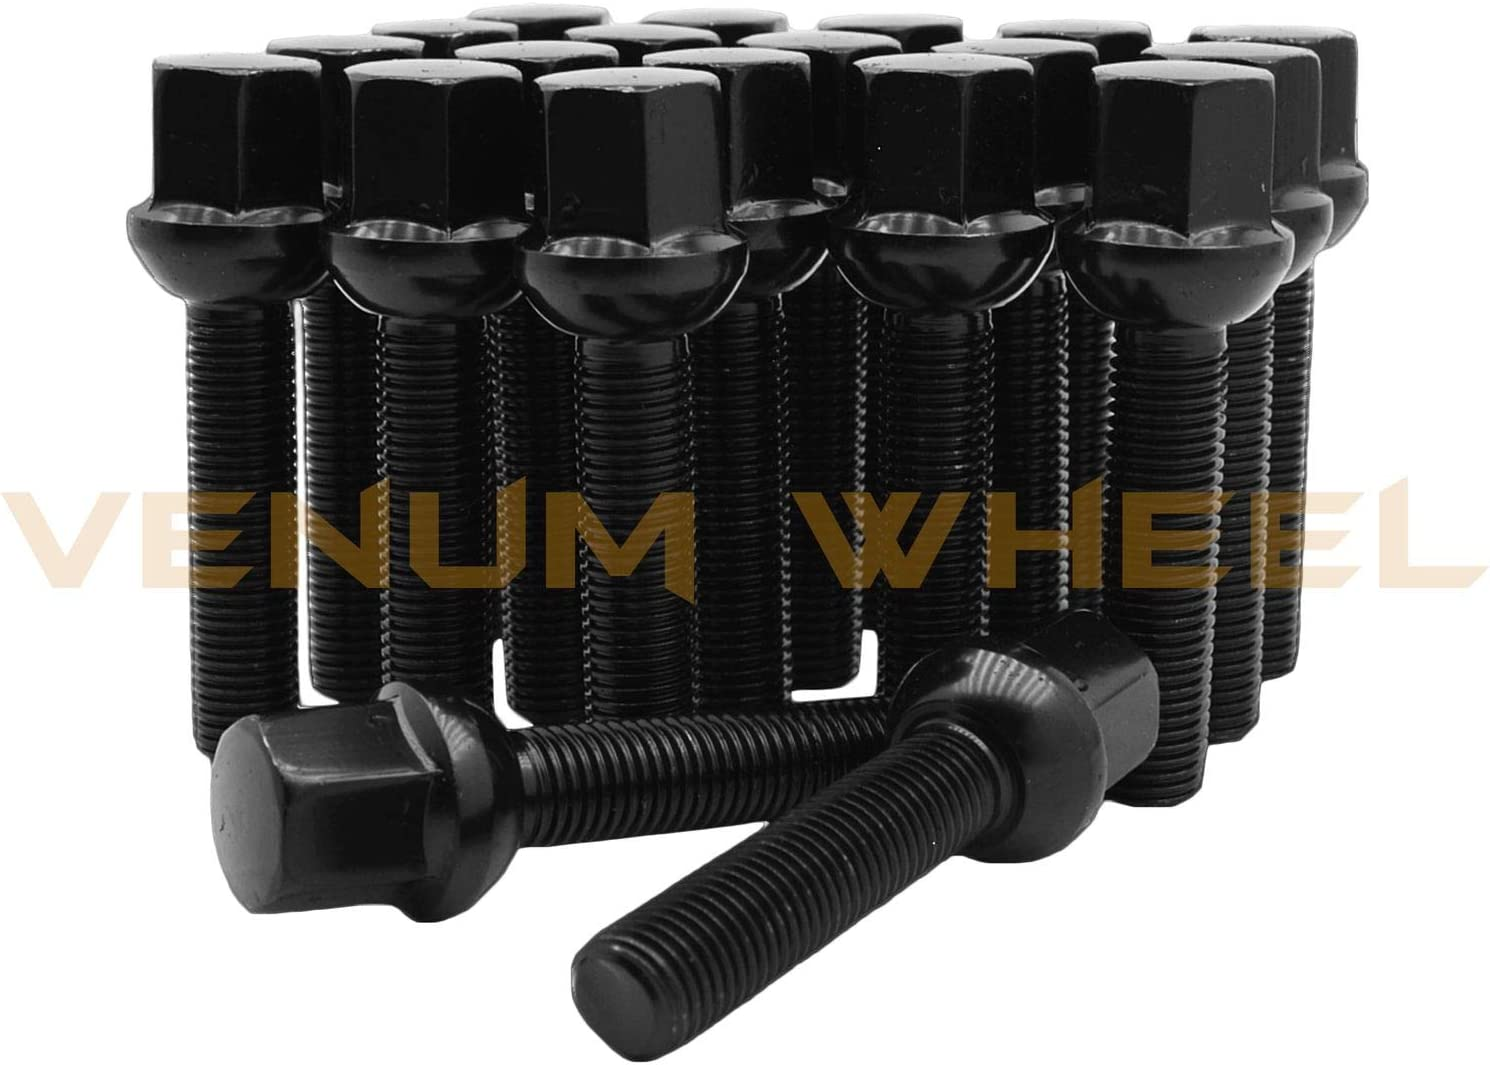 Venum wheel accessories 20Pc Black Powder Coated M14x1.5 Ball Seat Lug Bolts 40 mm Extended Shank Length Radius Works with Volkswagen Audi Mercedes Benz Porsche Vehicle W//Factory Wheels